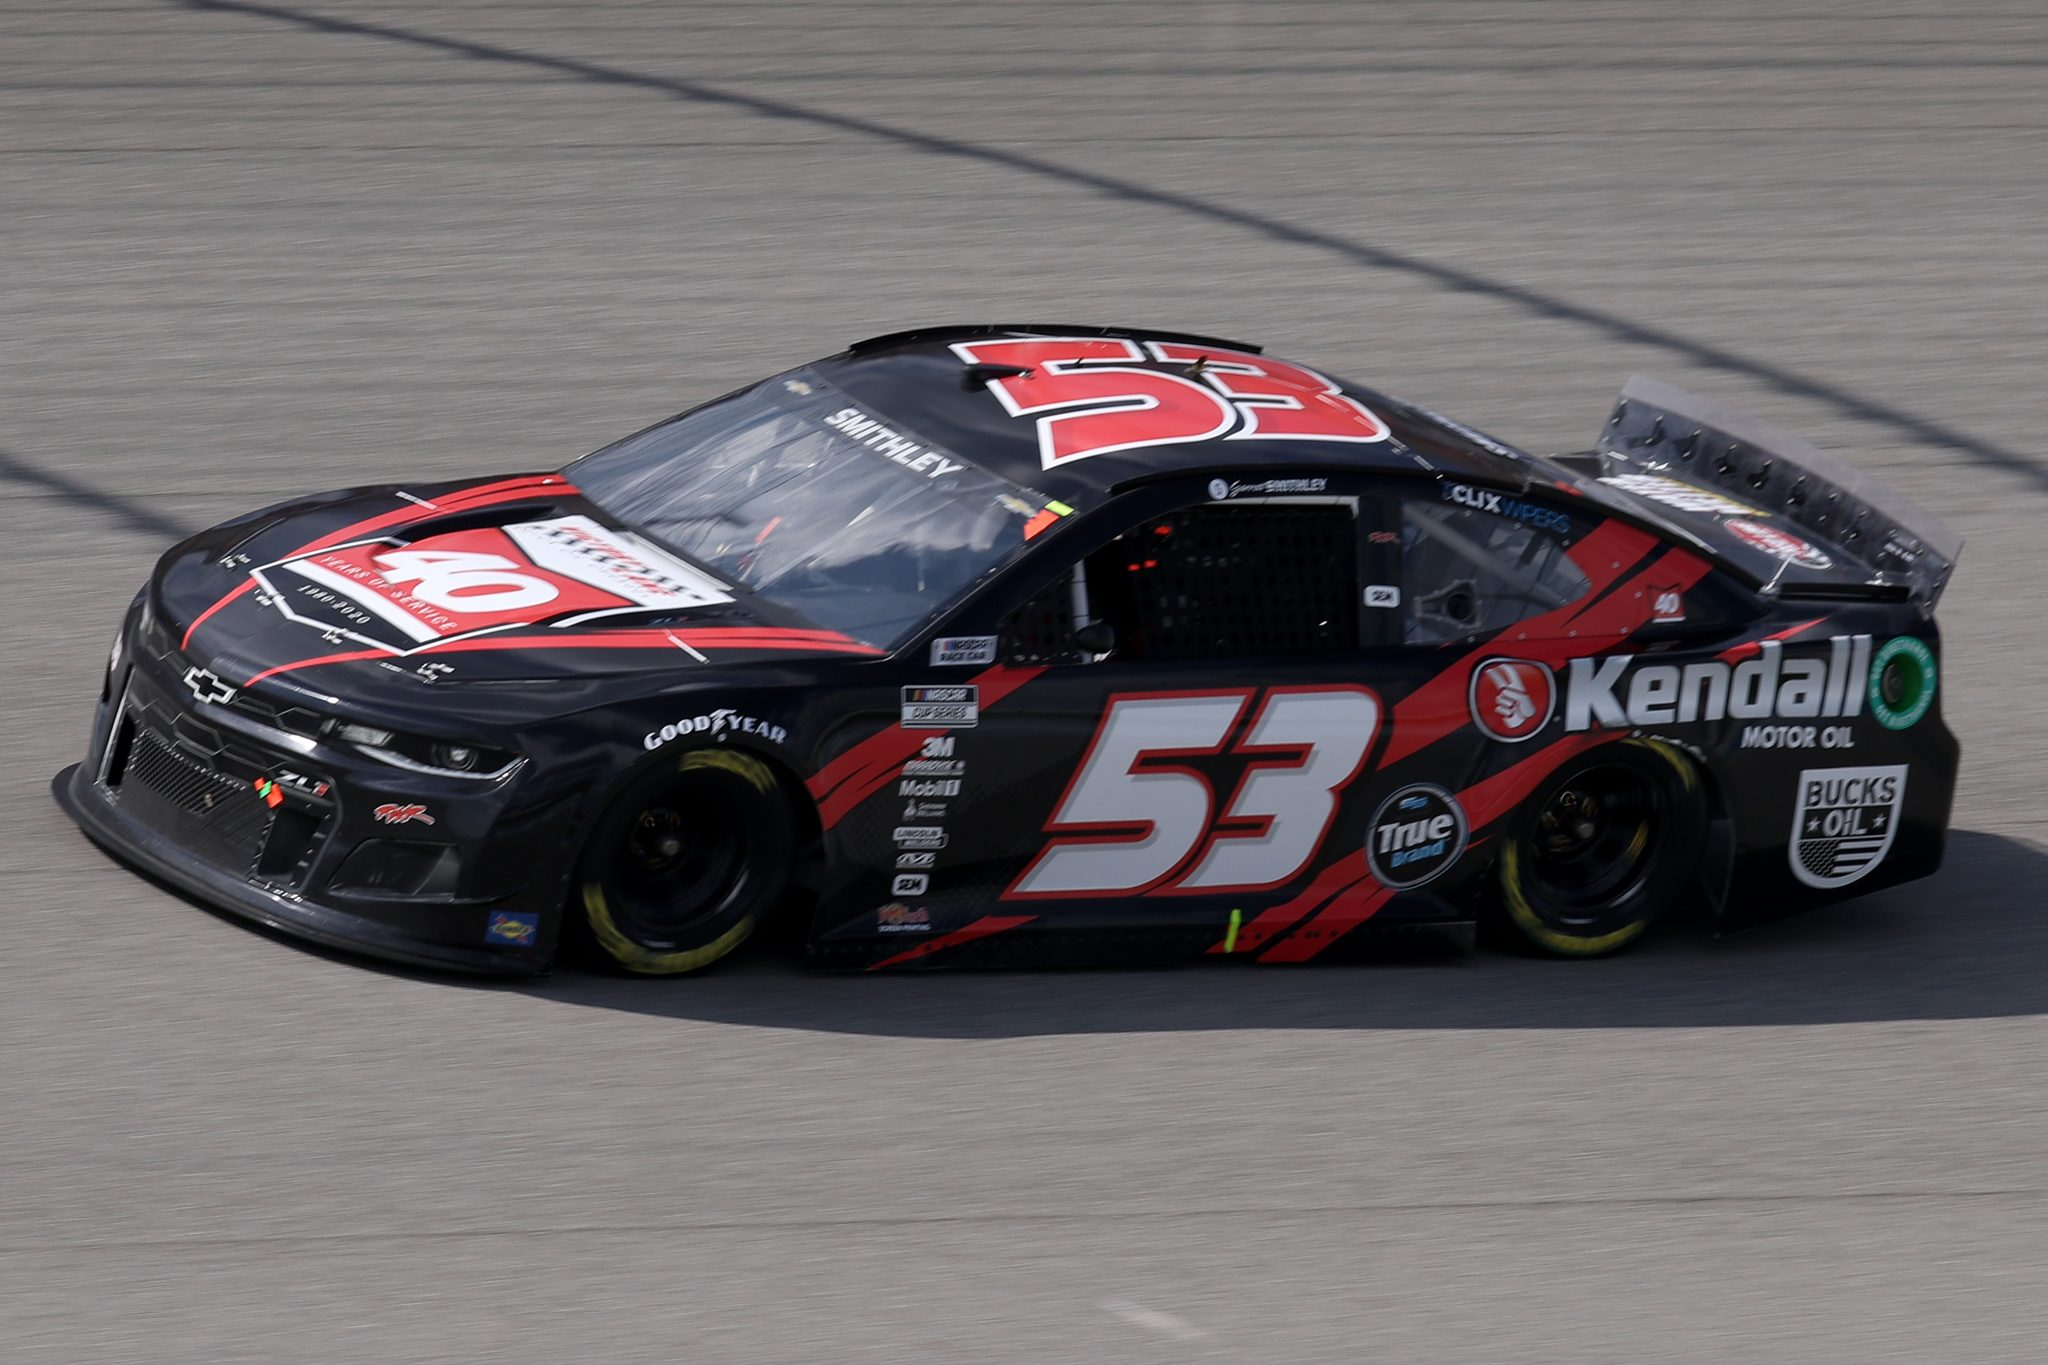 BROOKLYN, MICHIGAN - AUGUST 22: Garrett Smithley, driver of the #53 Kendall Motor Oil Chevrolet, drives during the NASCAR Cup Series FireKeepers Casino 400 at Michigan International Speedway on August 22, 2021 in Brooklyn, Michigan. (Photo by Sean Gardner/Getty Images) | Getty Images